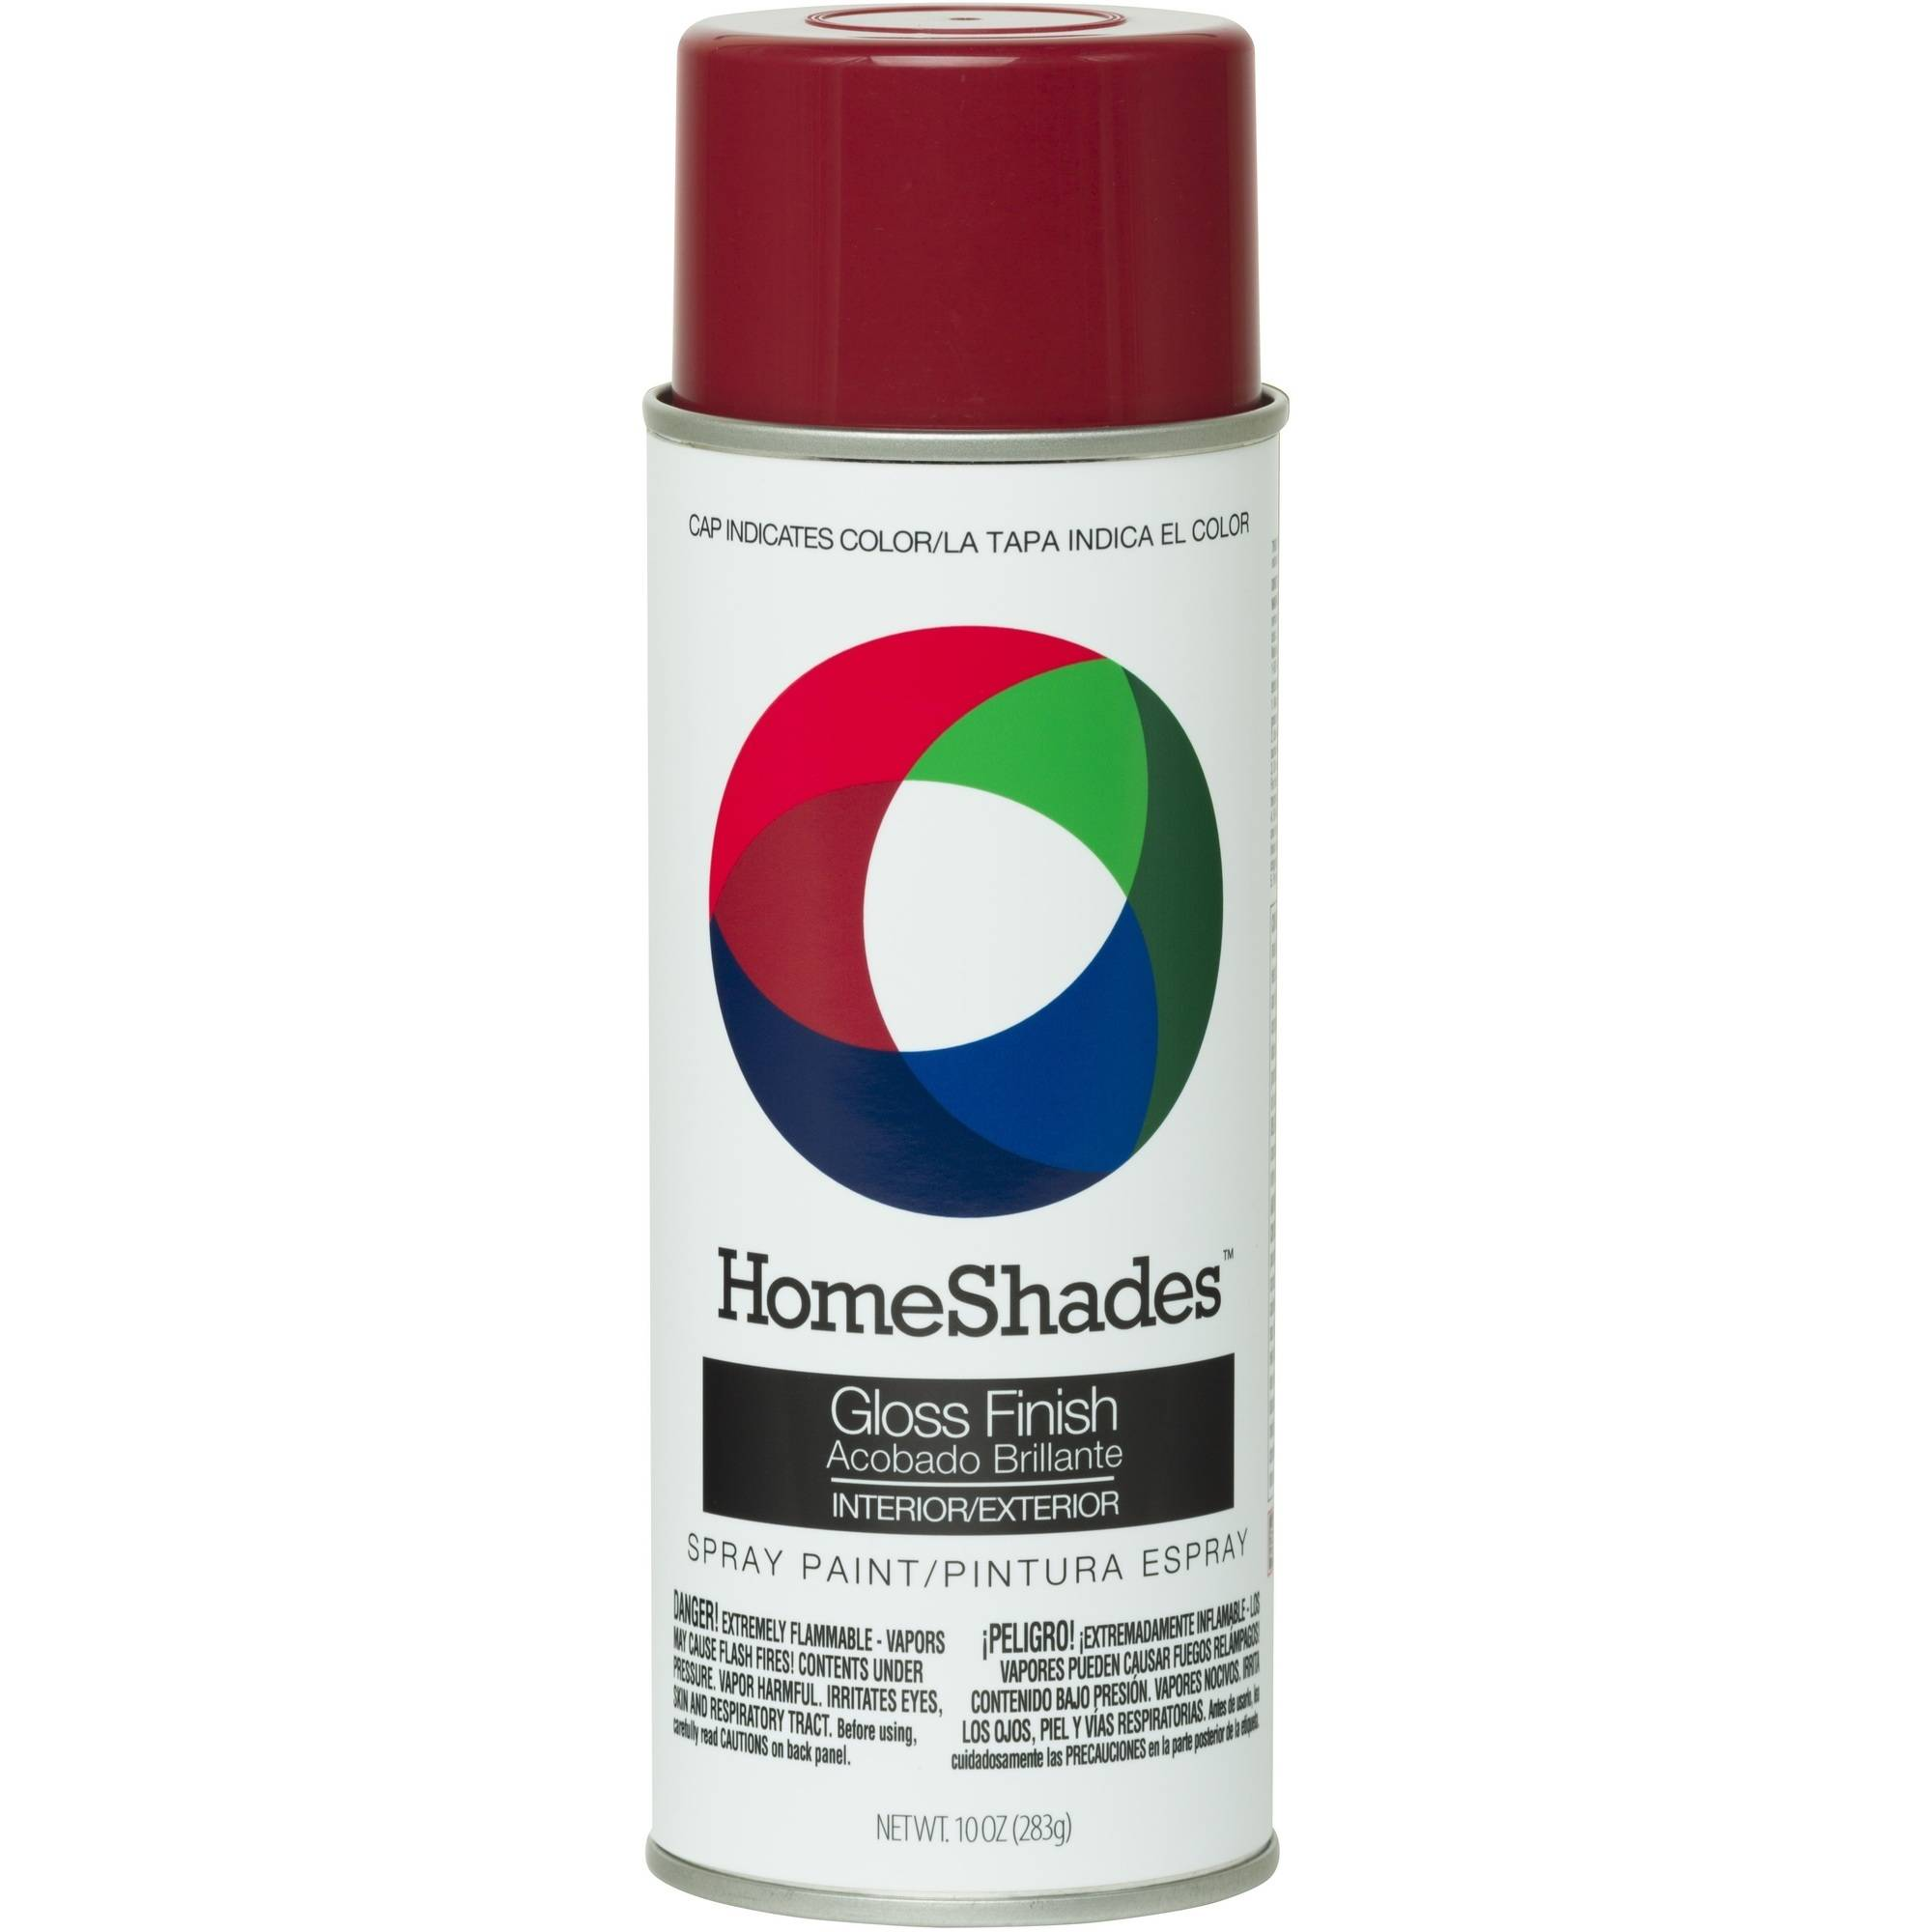 ColorPlace Gloss Spray Paint, Fire Red - Walmart.com